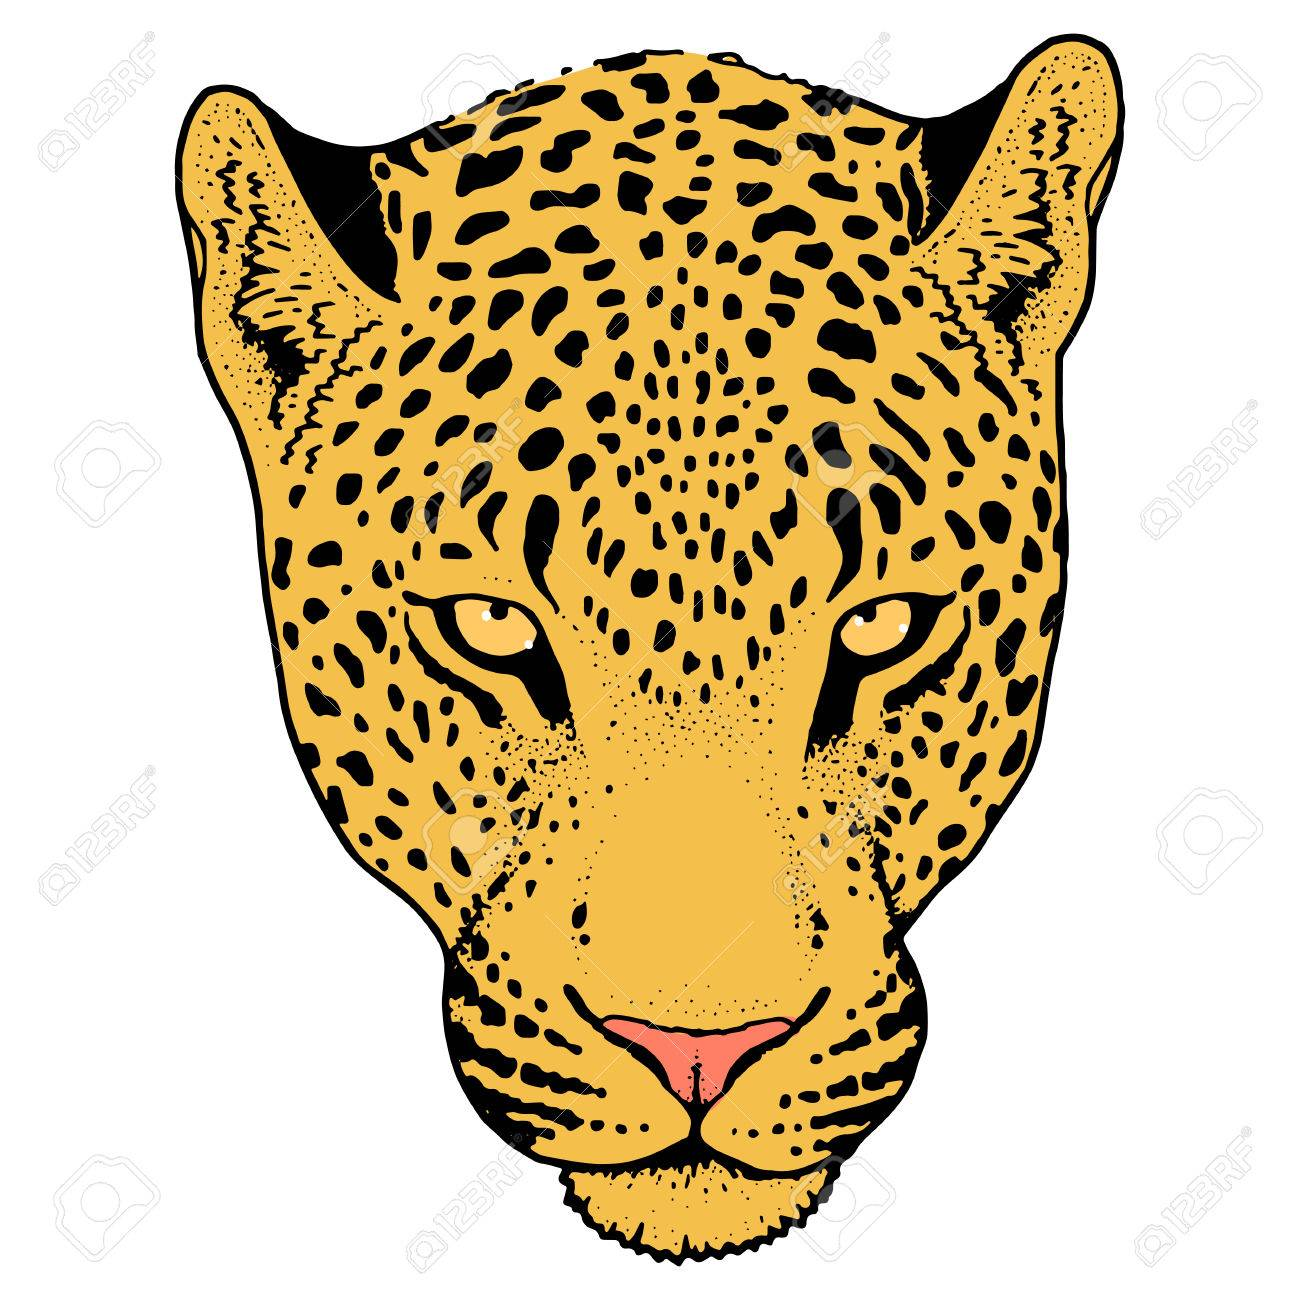 Leopard face clipart royalty free library Leopard Face Cliparts 16 - 1300 X 1300 - Making-The-Web.com royalty free library